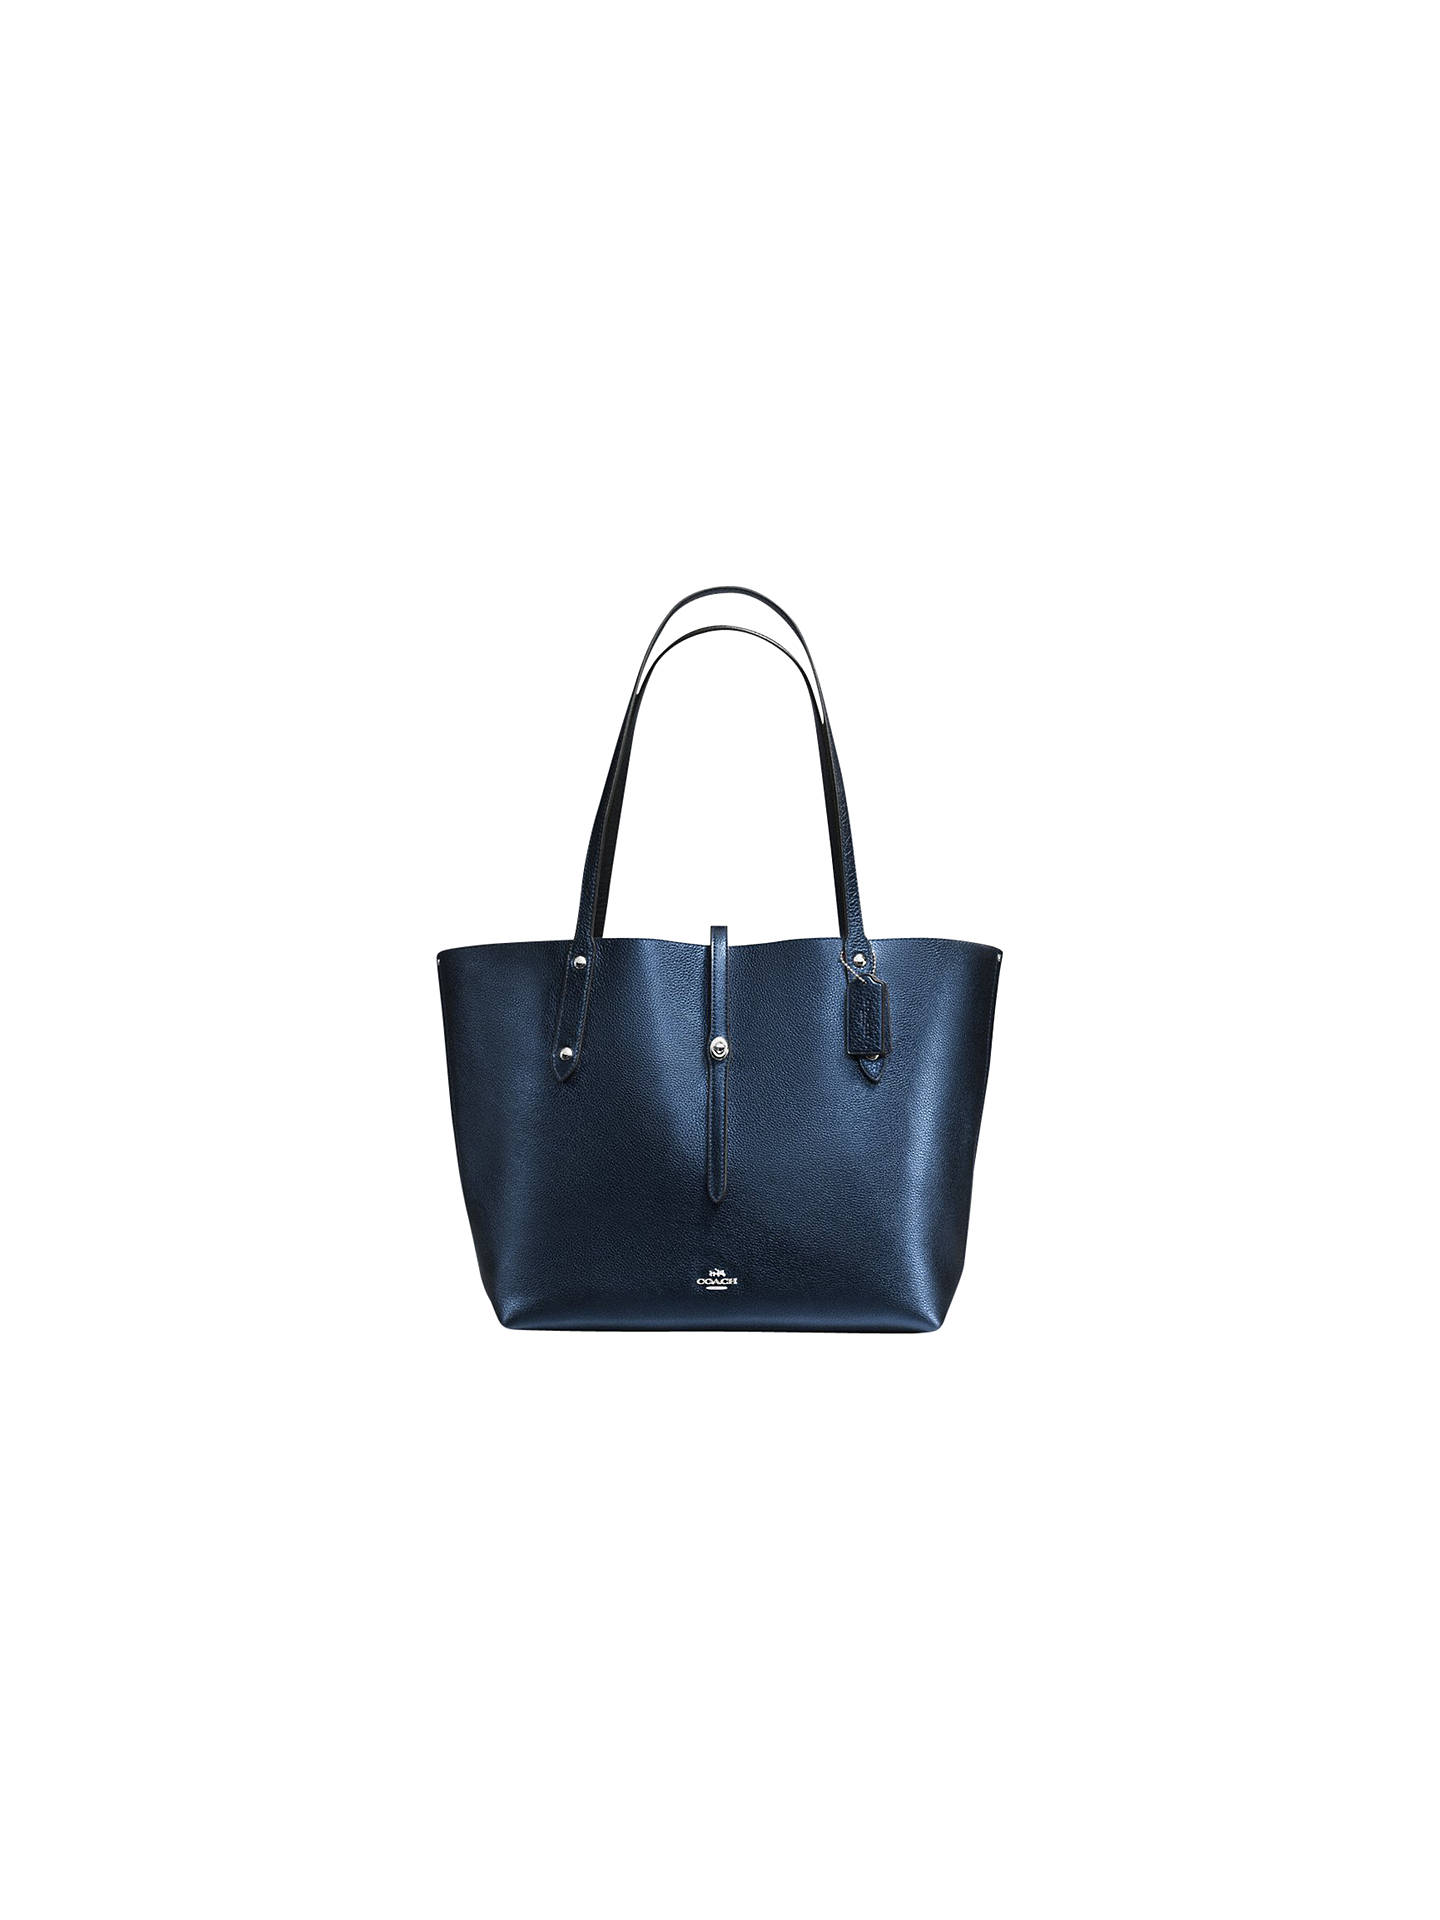 0933033ca62 Buy Coach Market Leather Tote Bag, Metallic Navy Online at johnlewis.com